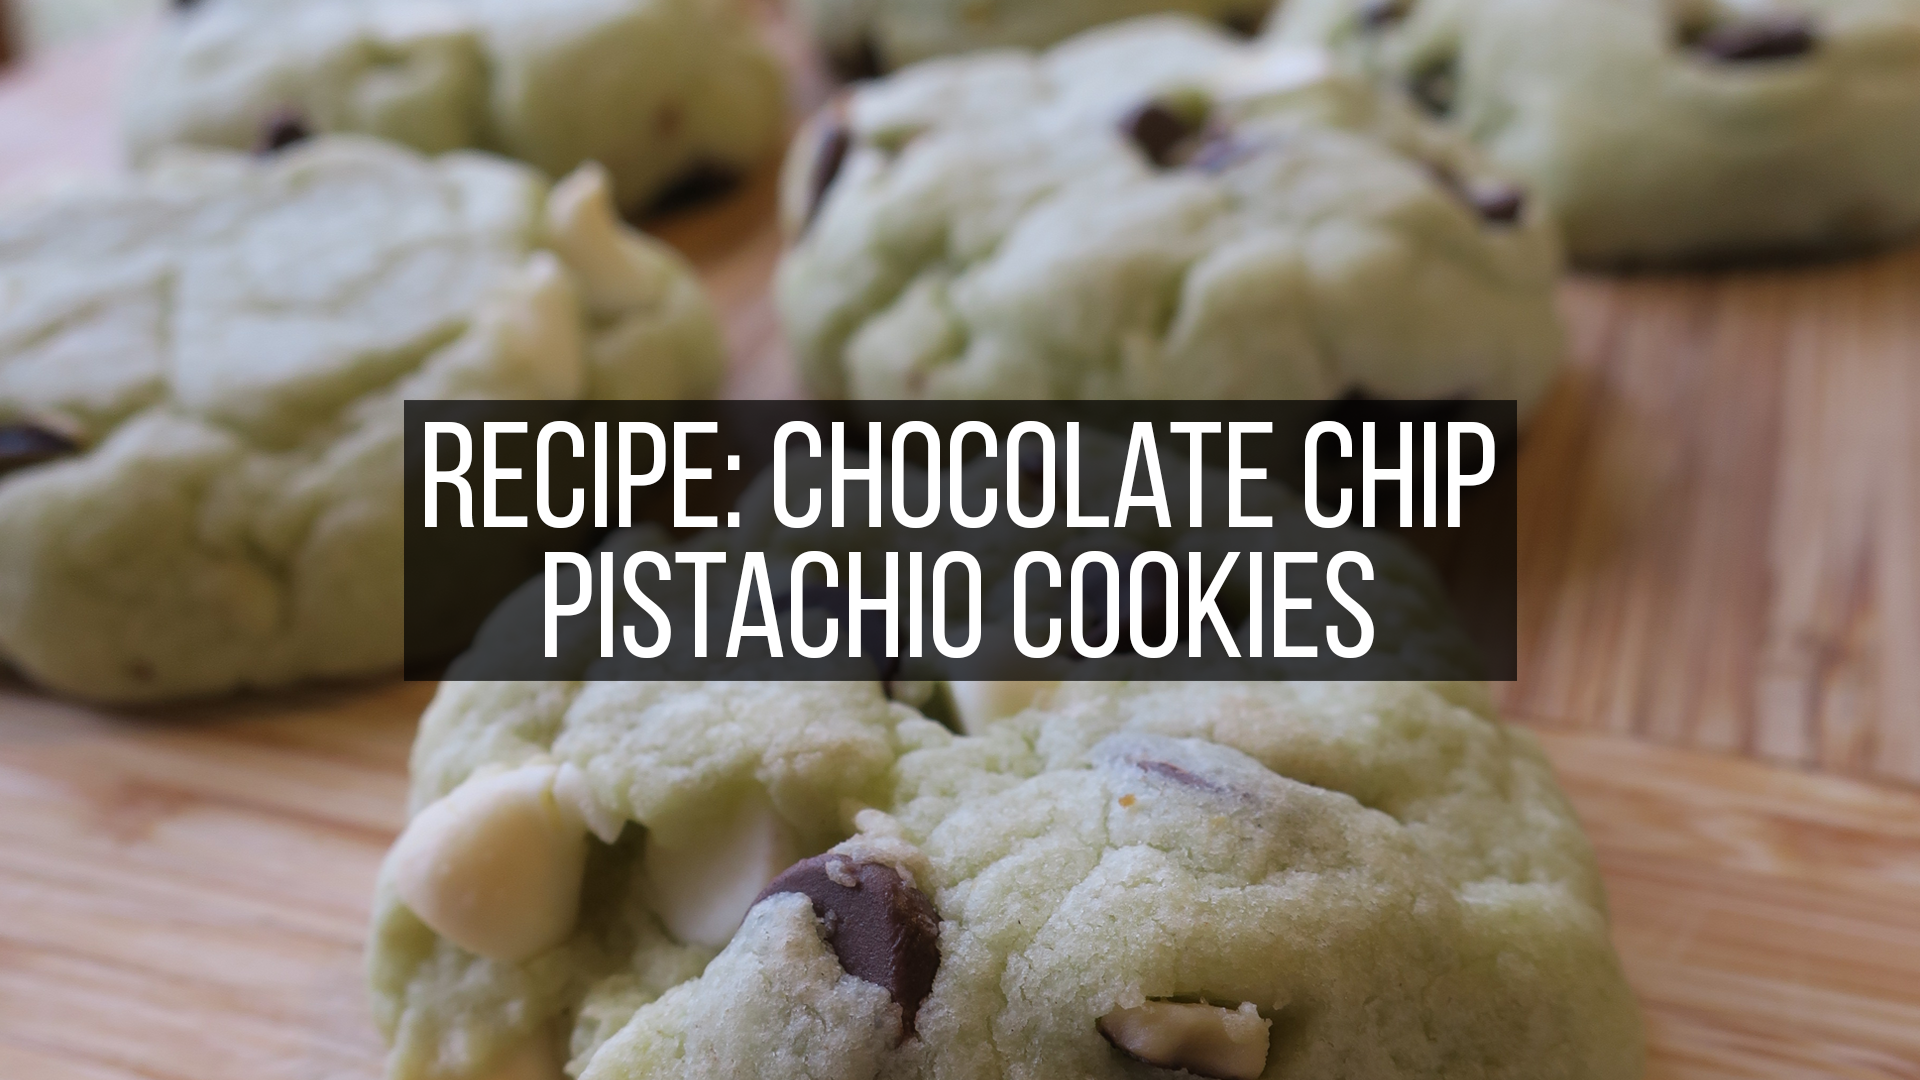 pistachio cookies featured image